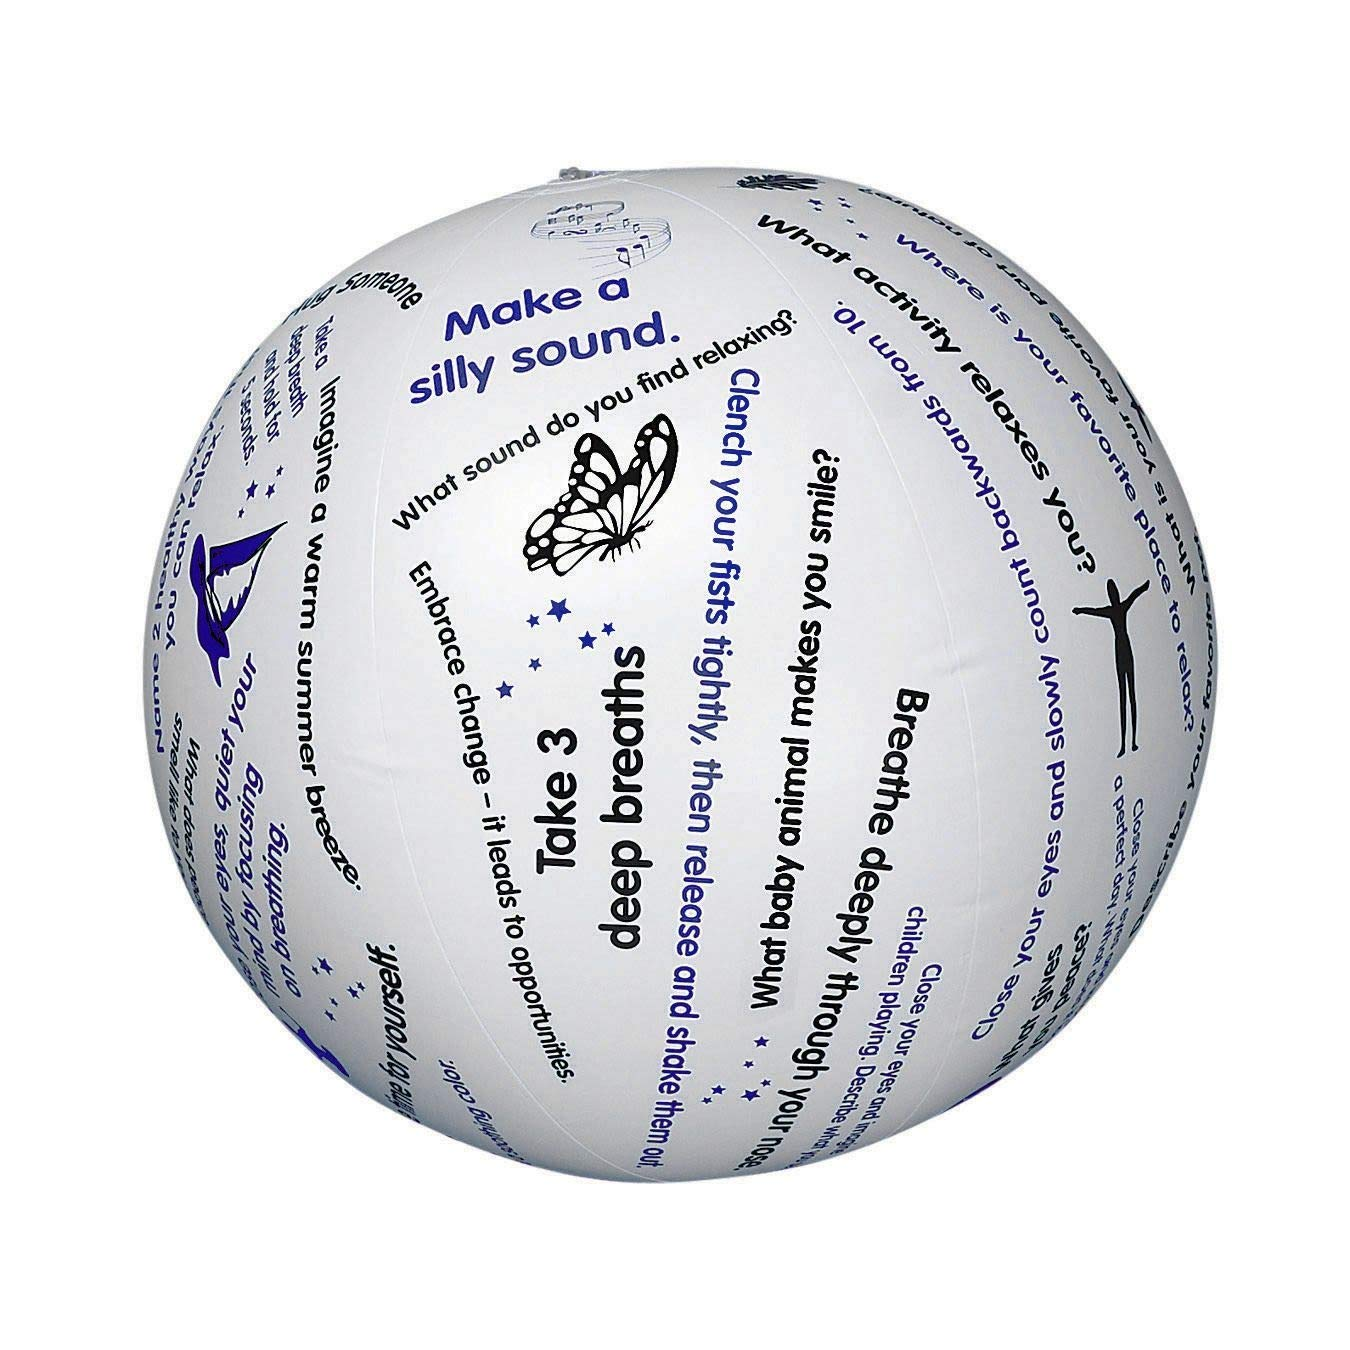 S&S Worldwide Toss 'n Talk-About Relaxation Ball, 24in